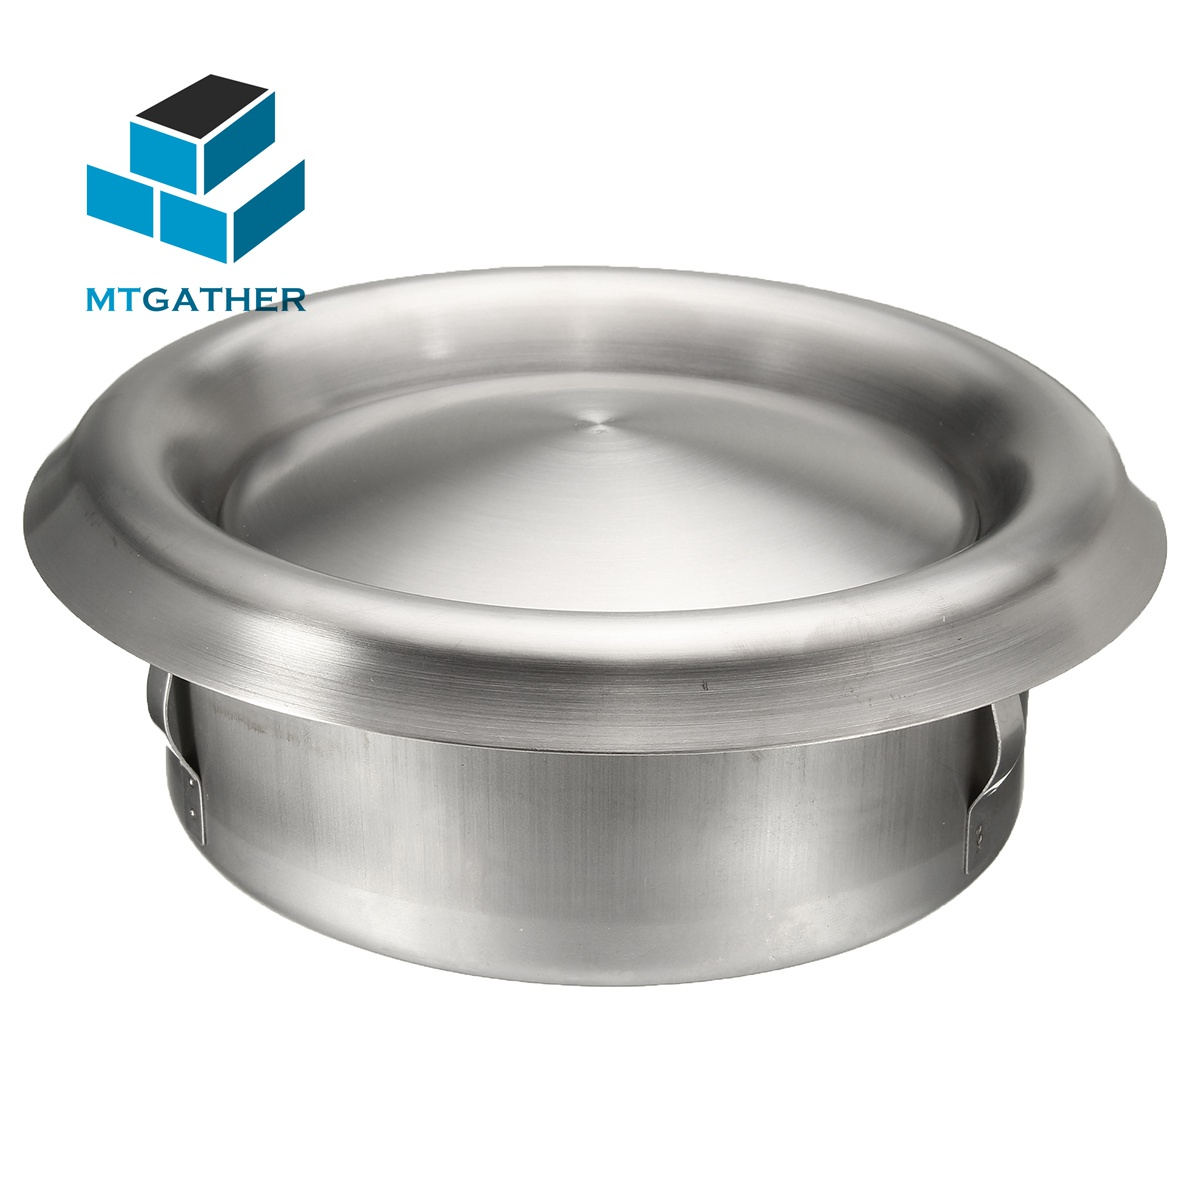 MTGATHER 3 Sizes Stainless Steel Vent <font><b>Duct</b></font> Grill Tumble Dryer Cooker Extractor <font><b>Fan</b></font> Heating Cooling & Vents <font><b>100mm</b></font> 125mm 150mm image